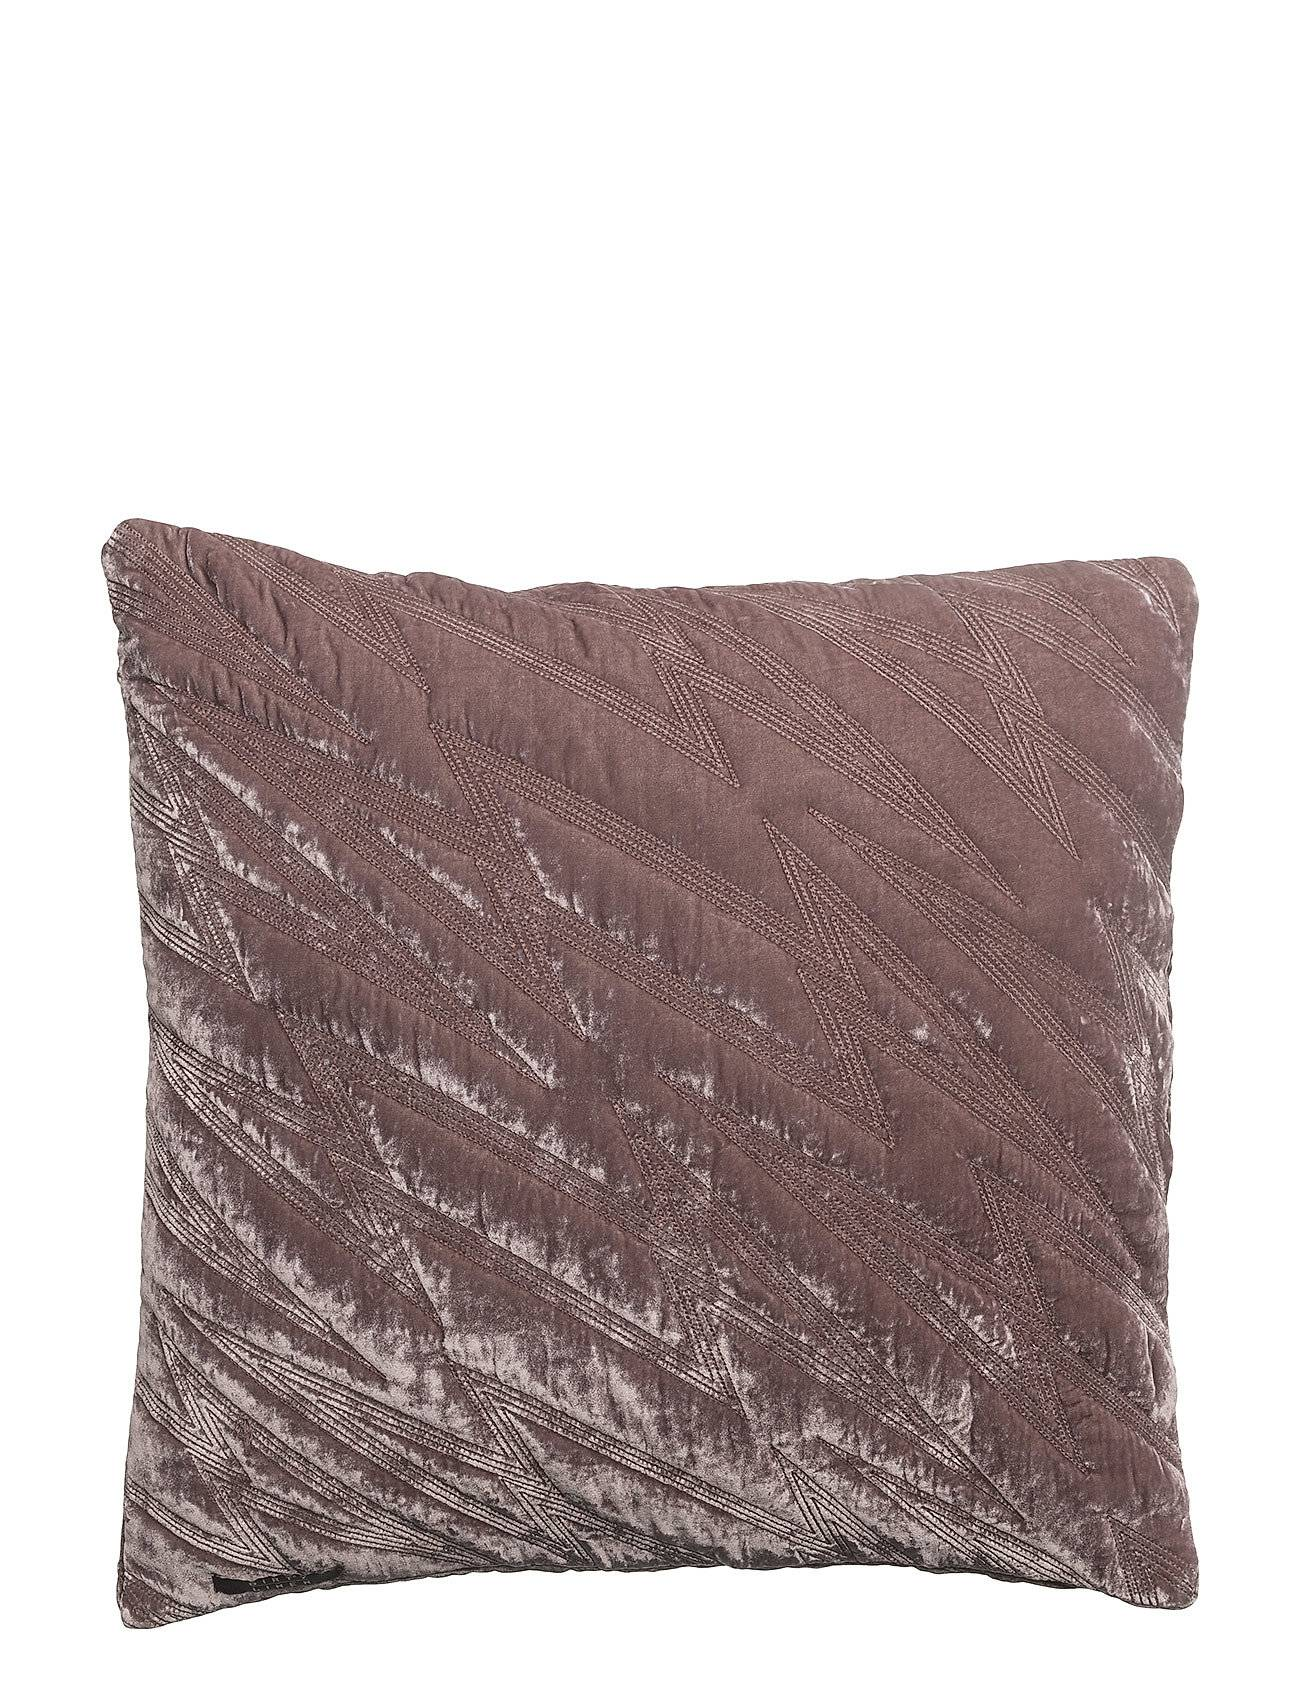 Dirty Linen Spark Decorative Cushion Cover